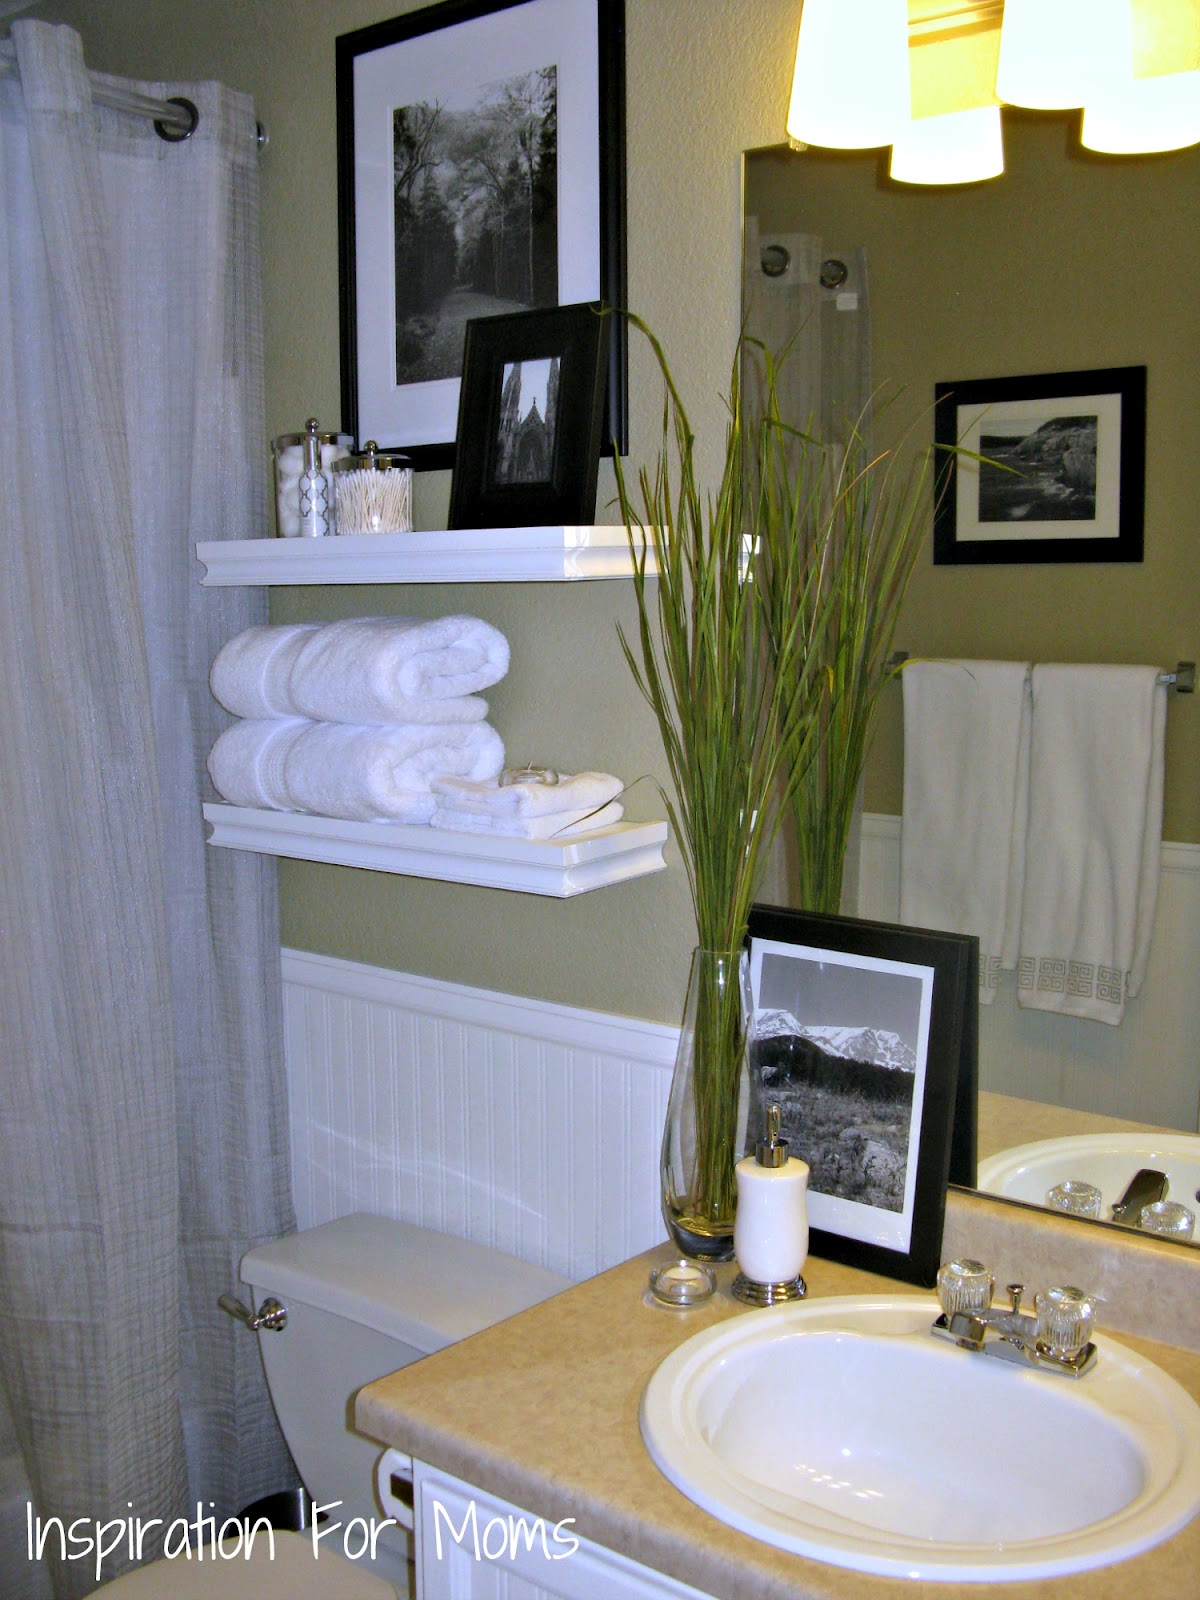 I finished it friday guest bathroom remodel inspiration for Small bathroom decorating ideas photos